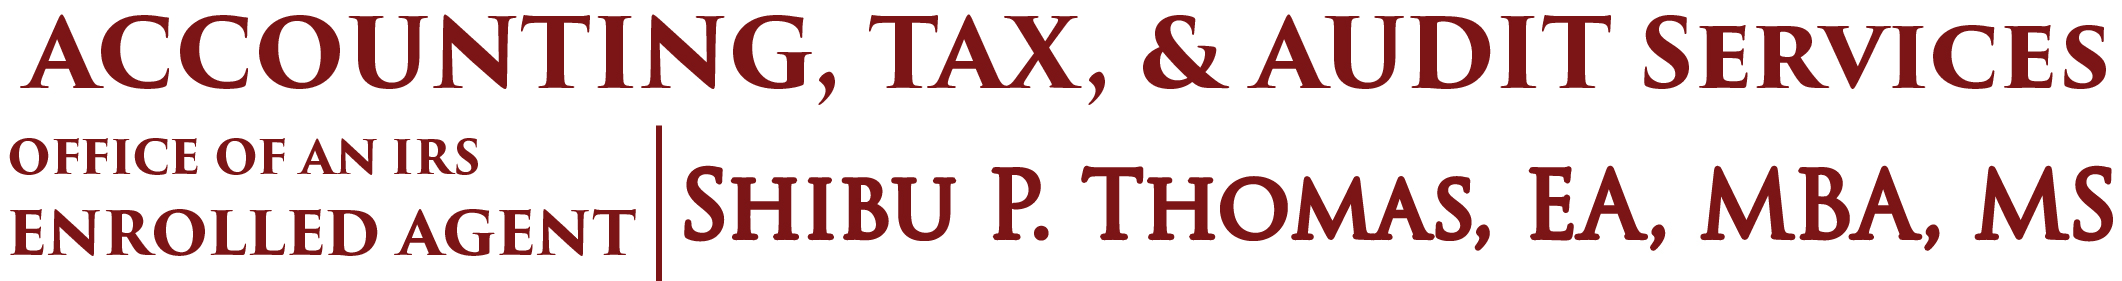 Staten Island, NY Accounting Firm | Tax Resolution for Individuals Page | Accounting, Tax, & Audit Services Shibu P. Thomas, EA, MBA, MS